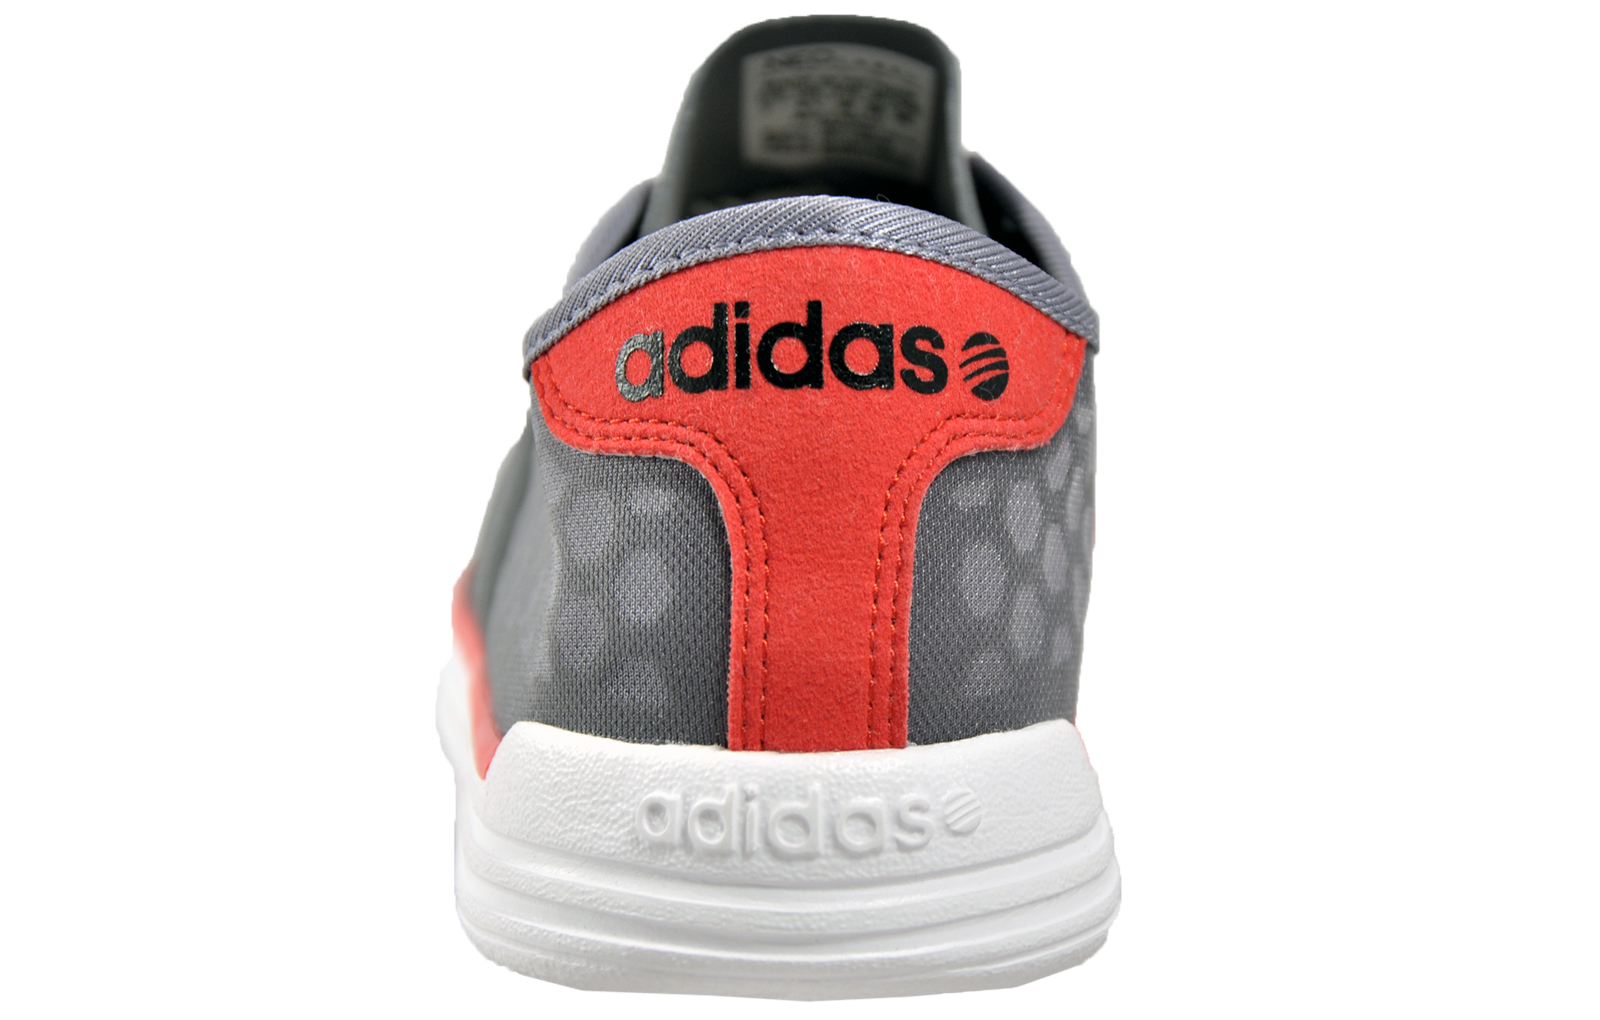 Adidas Neo Easy Tech Kenmore Cleaningcouk